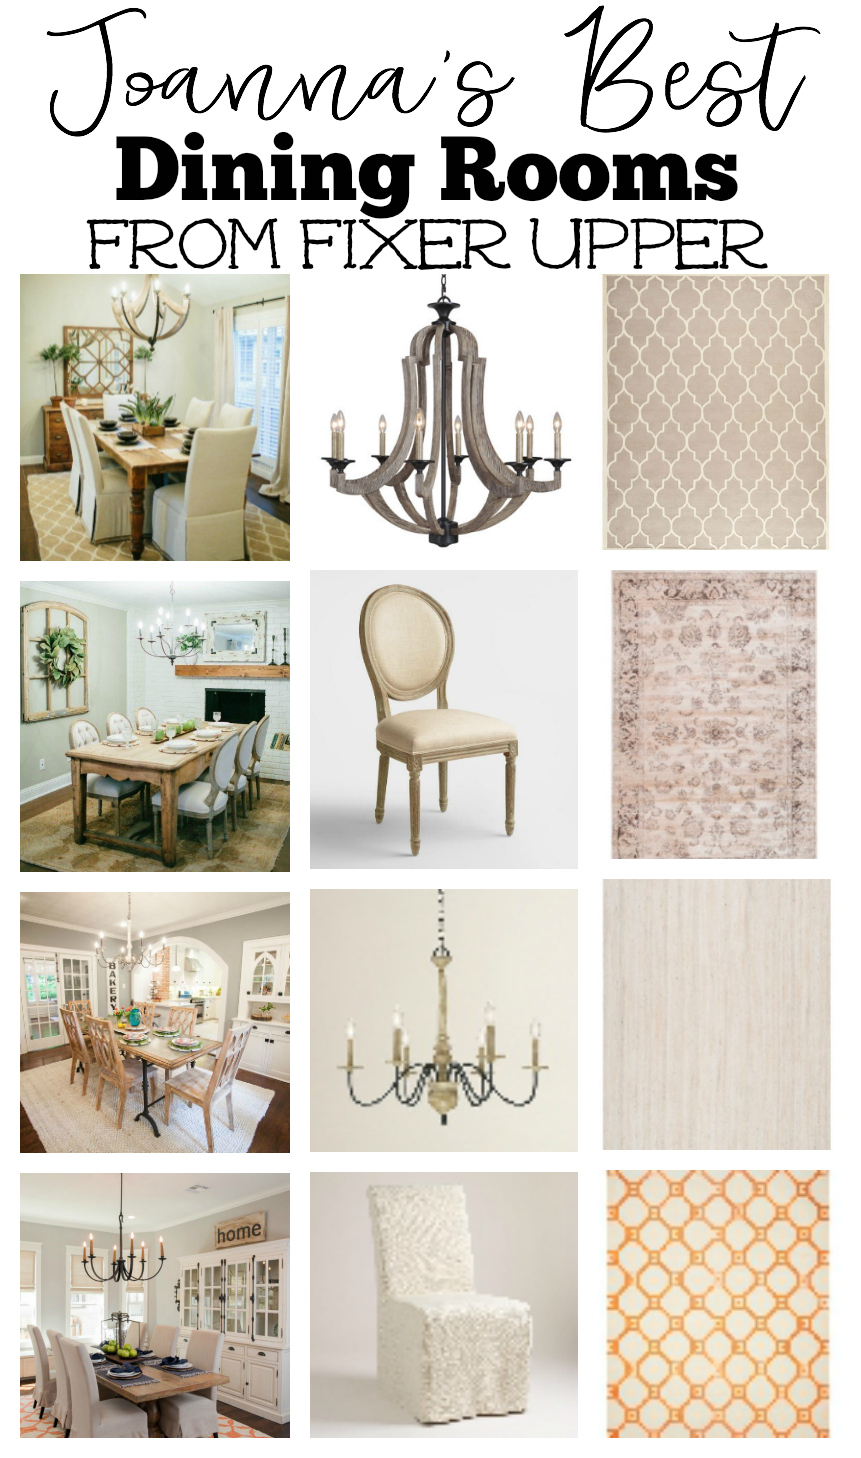 Need dining room inspiration? Check out Joanna Gaines best dining rooms from Fixer Upper. And see the products to help you create the look in your own home.